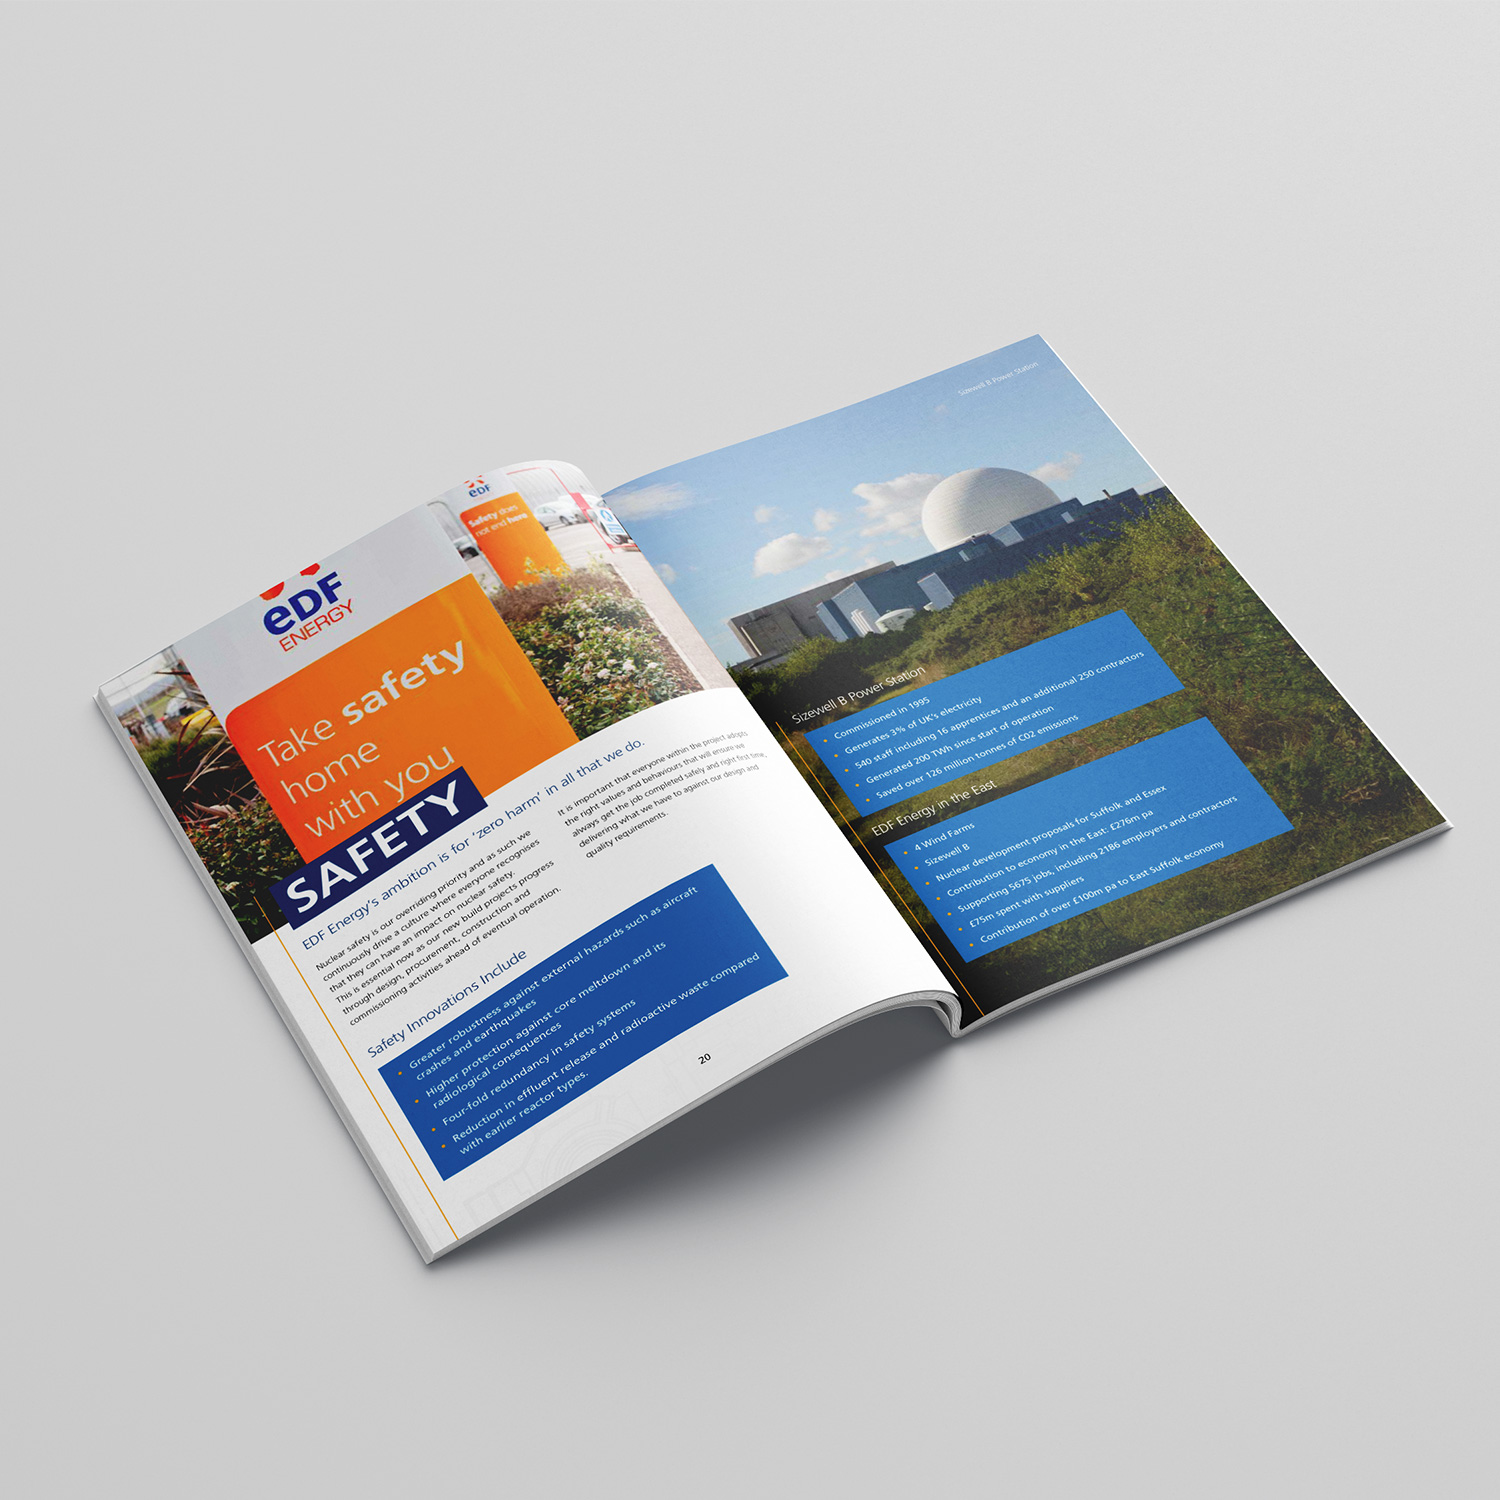 EDF Sizewell C brochure inside pages